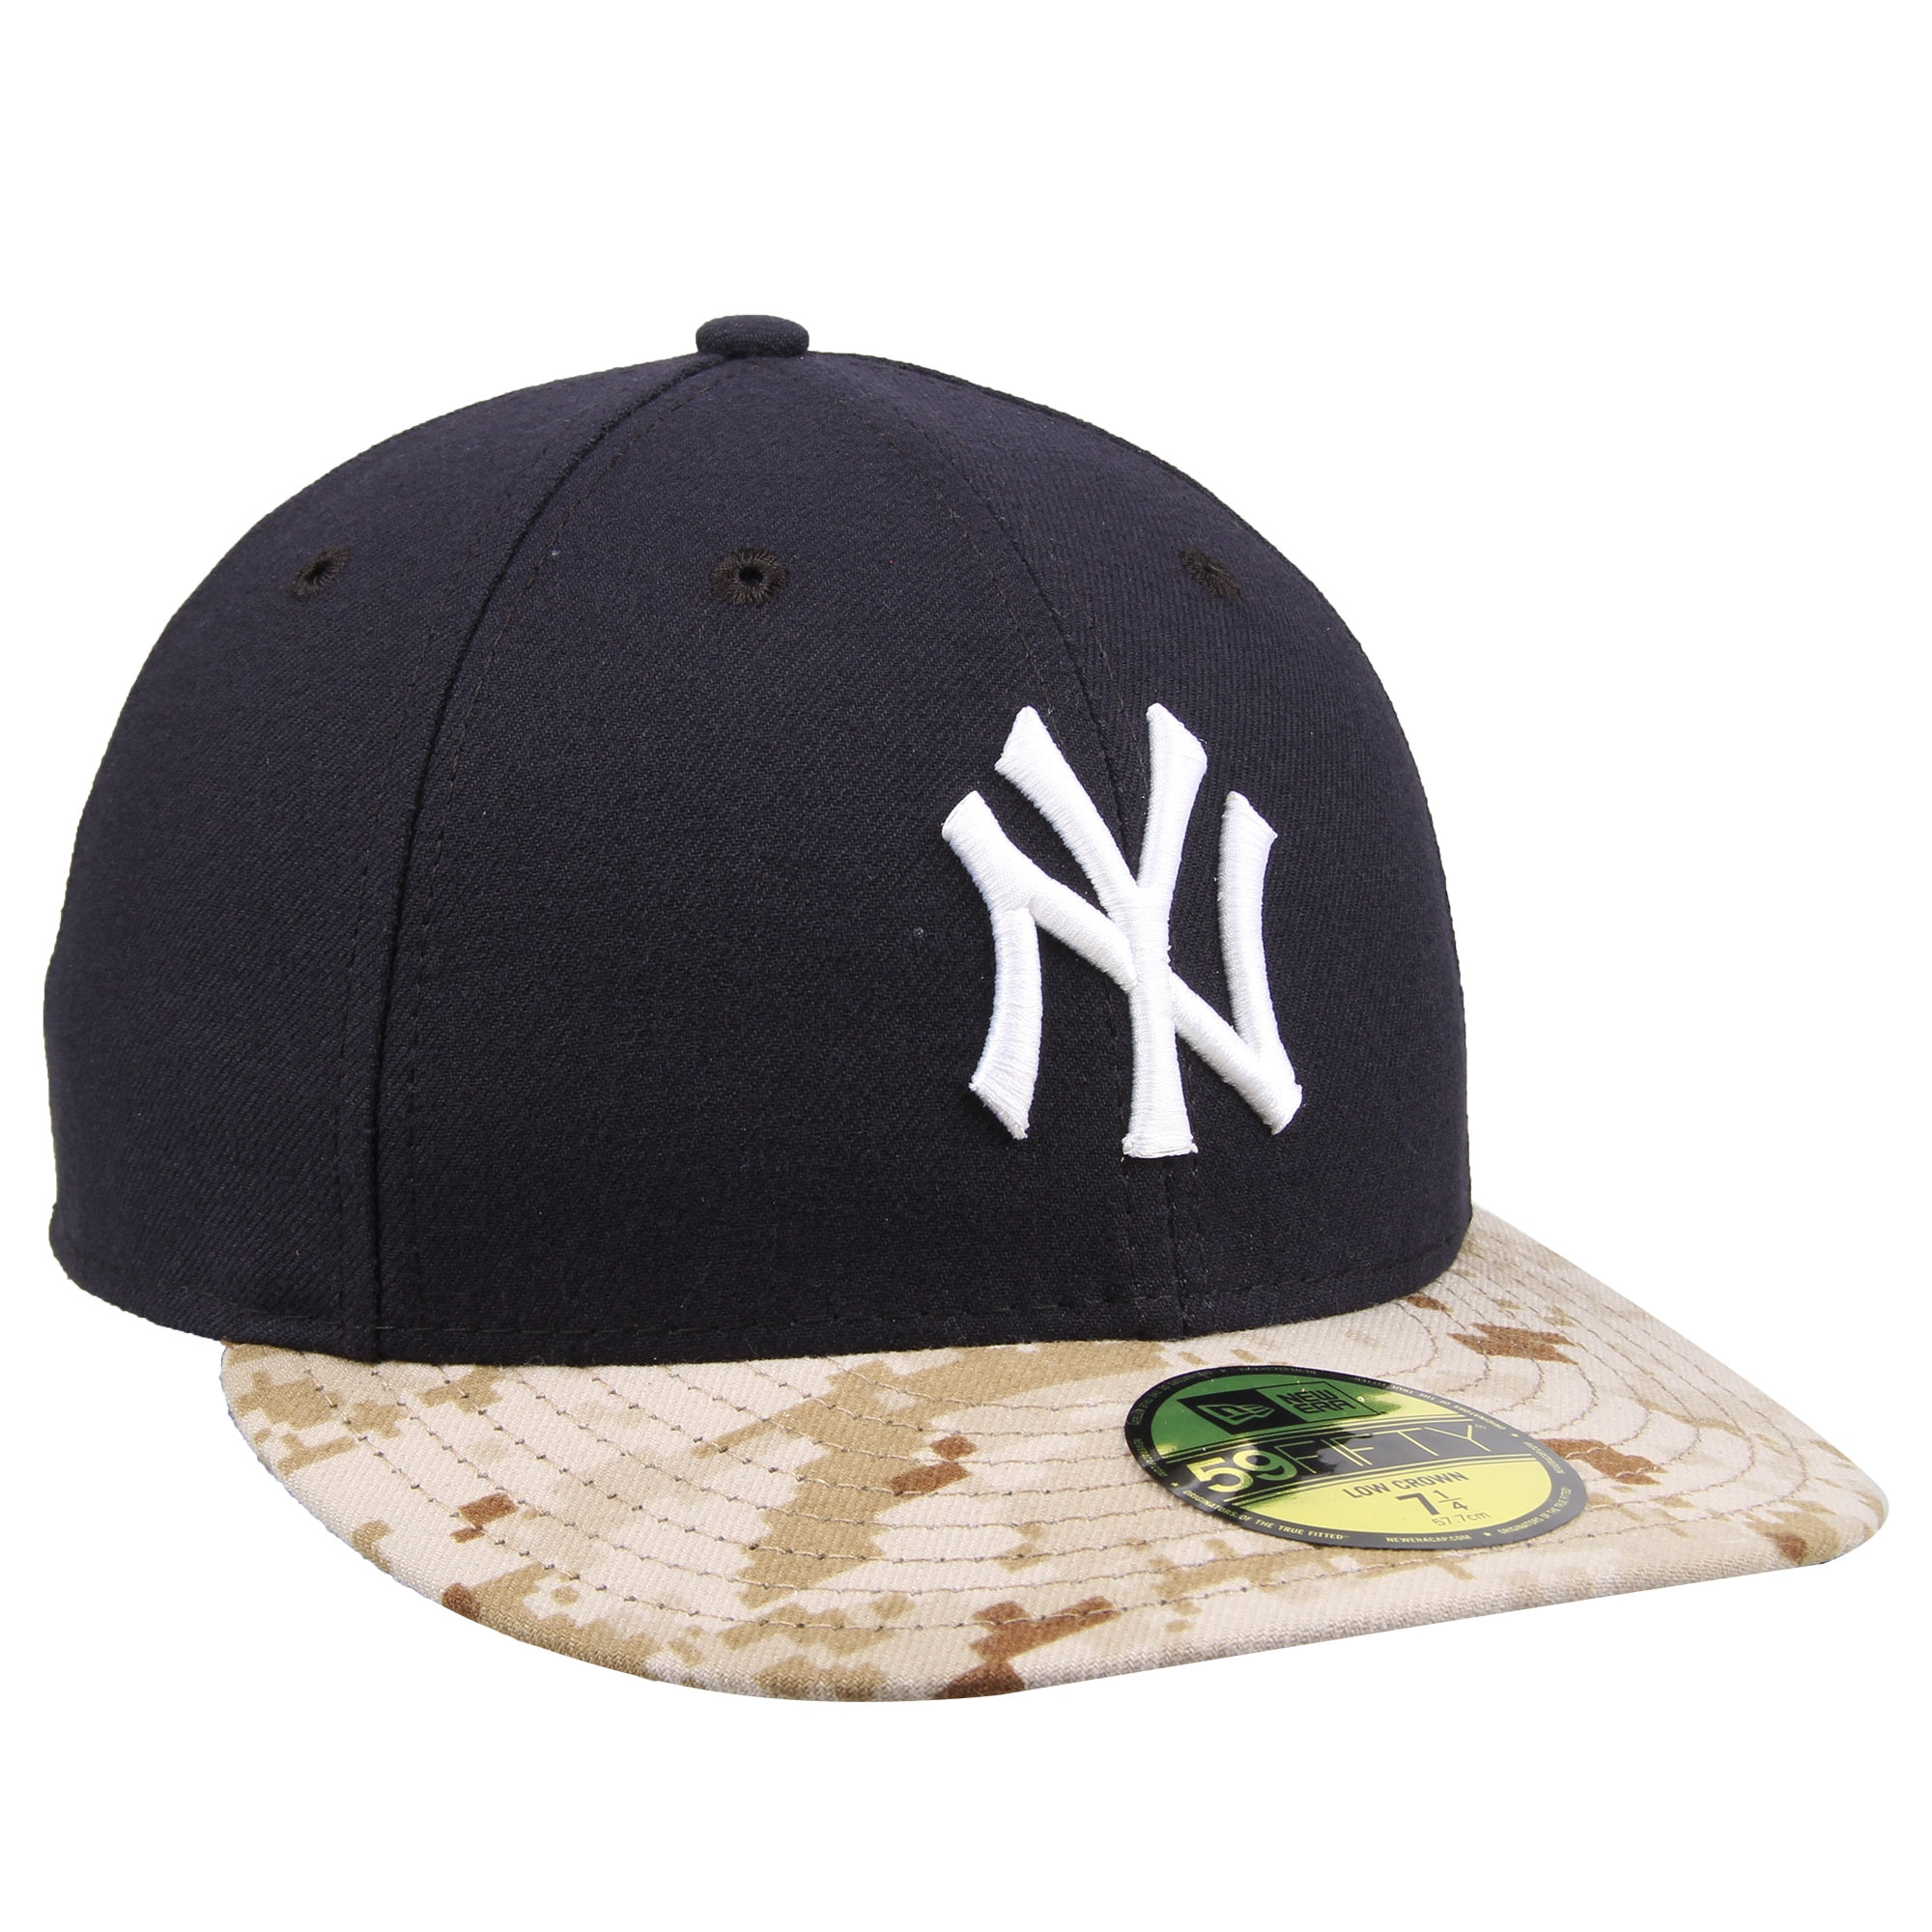 New York Yankees New Era Memorial Day Stars   Stripes On-Field 59FIFTY  Fitted Hat - Navy Camo - Walmart.com 419583cf1486